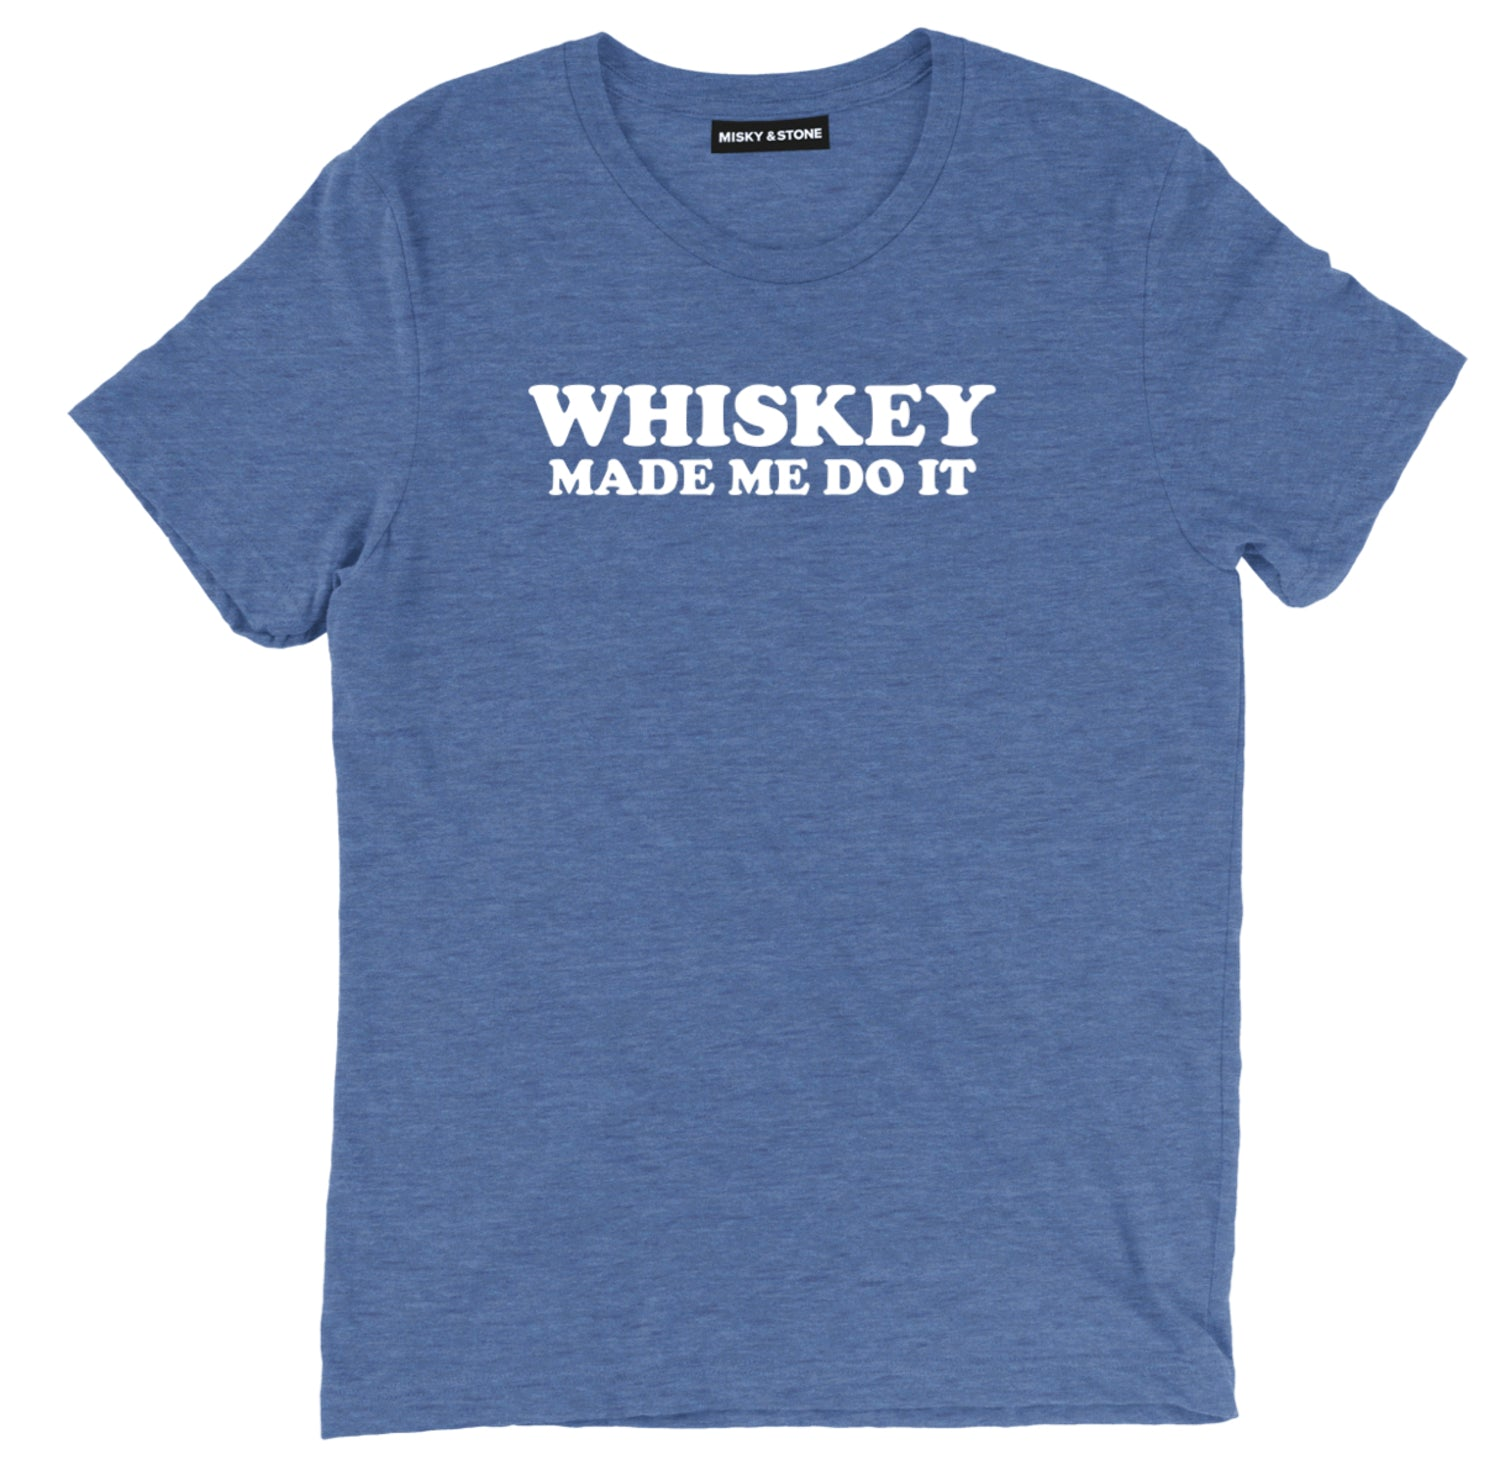 Whiskey Made Me Do It Unisex Tee Shirt